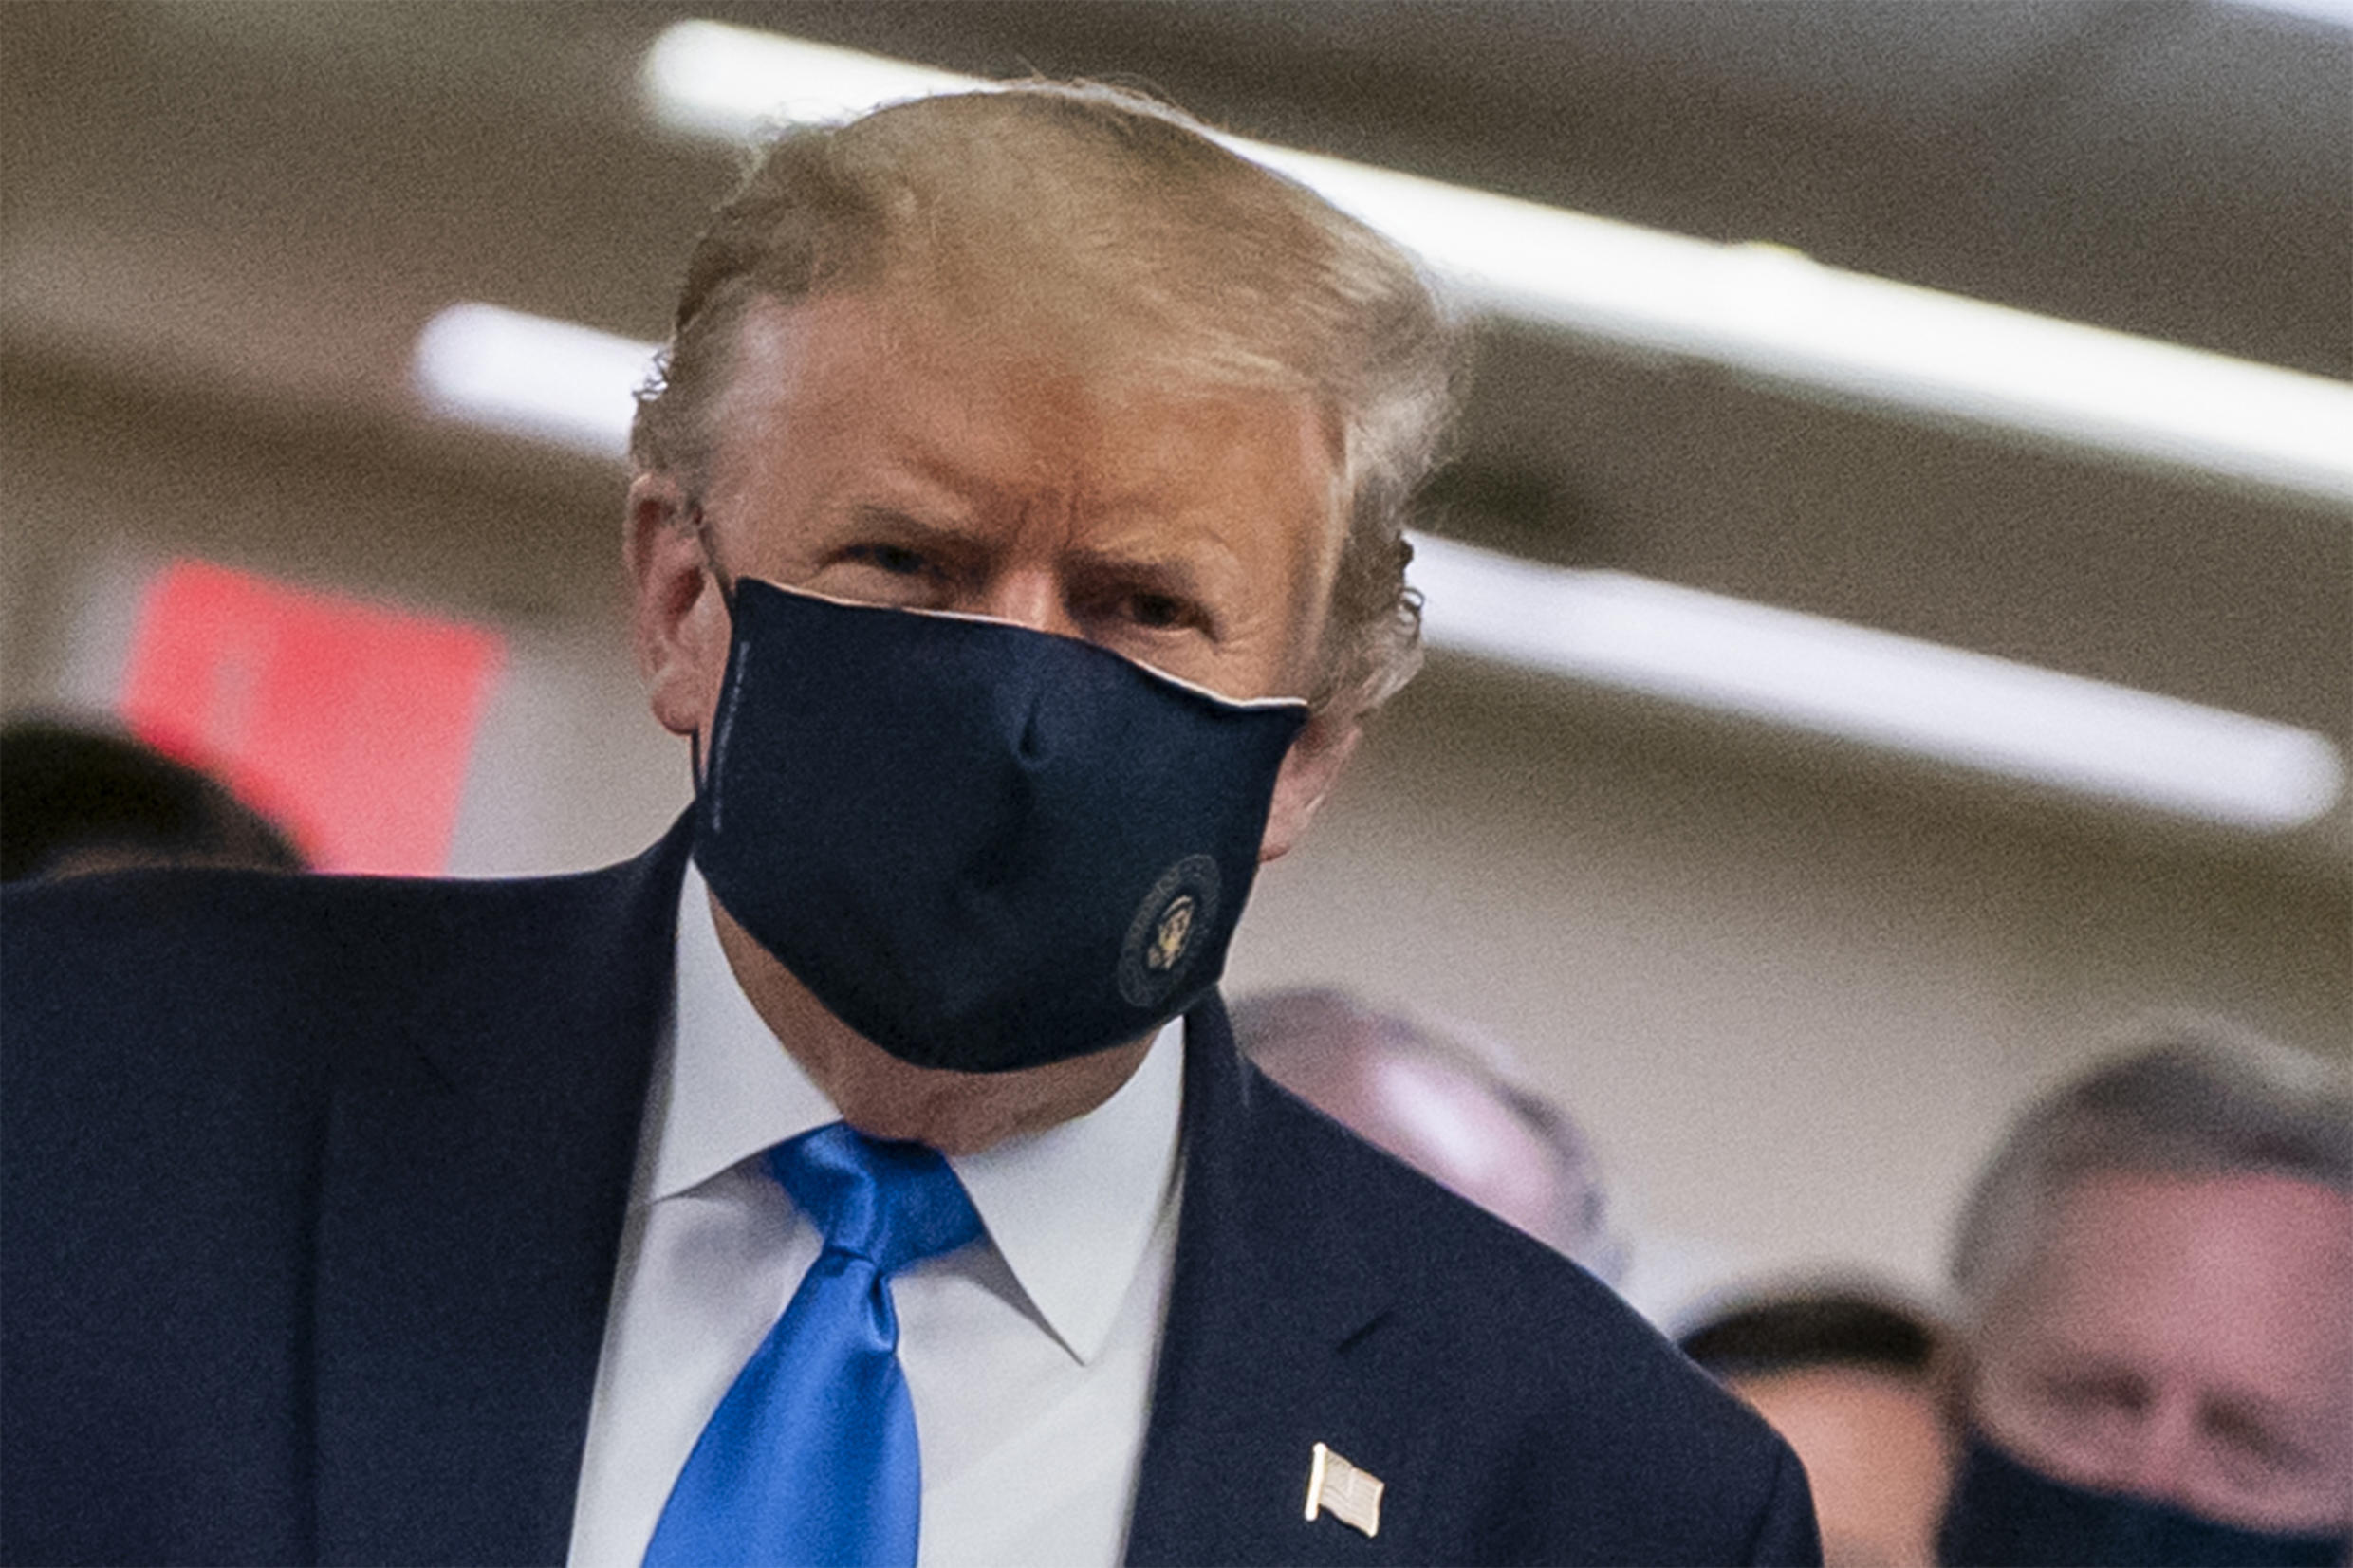 President Donald Trump makes a rare appearance in a mask as part of a new attempt to restore his standing with Americans over the handling of the coronavirus pandemic